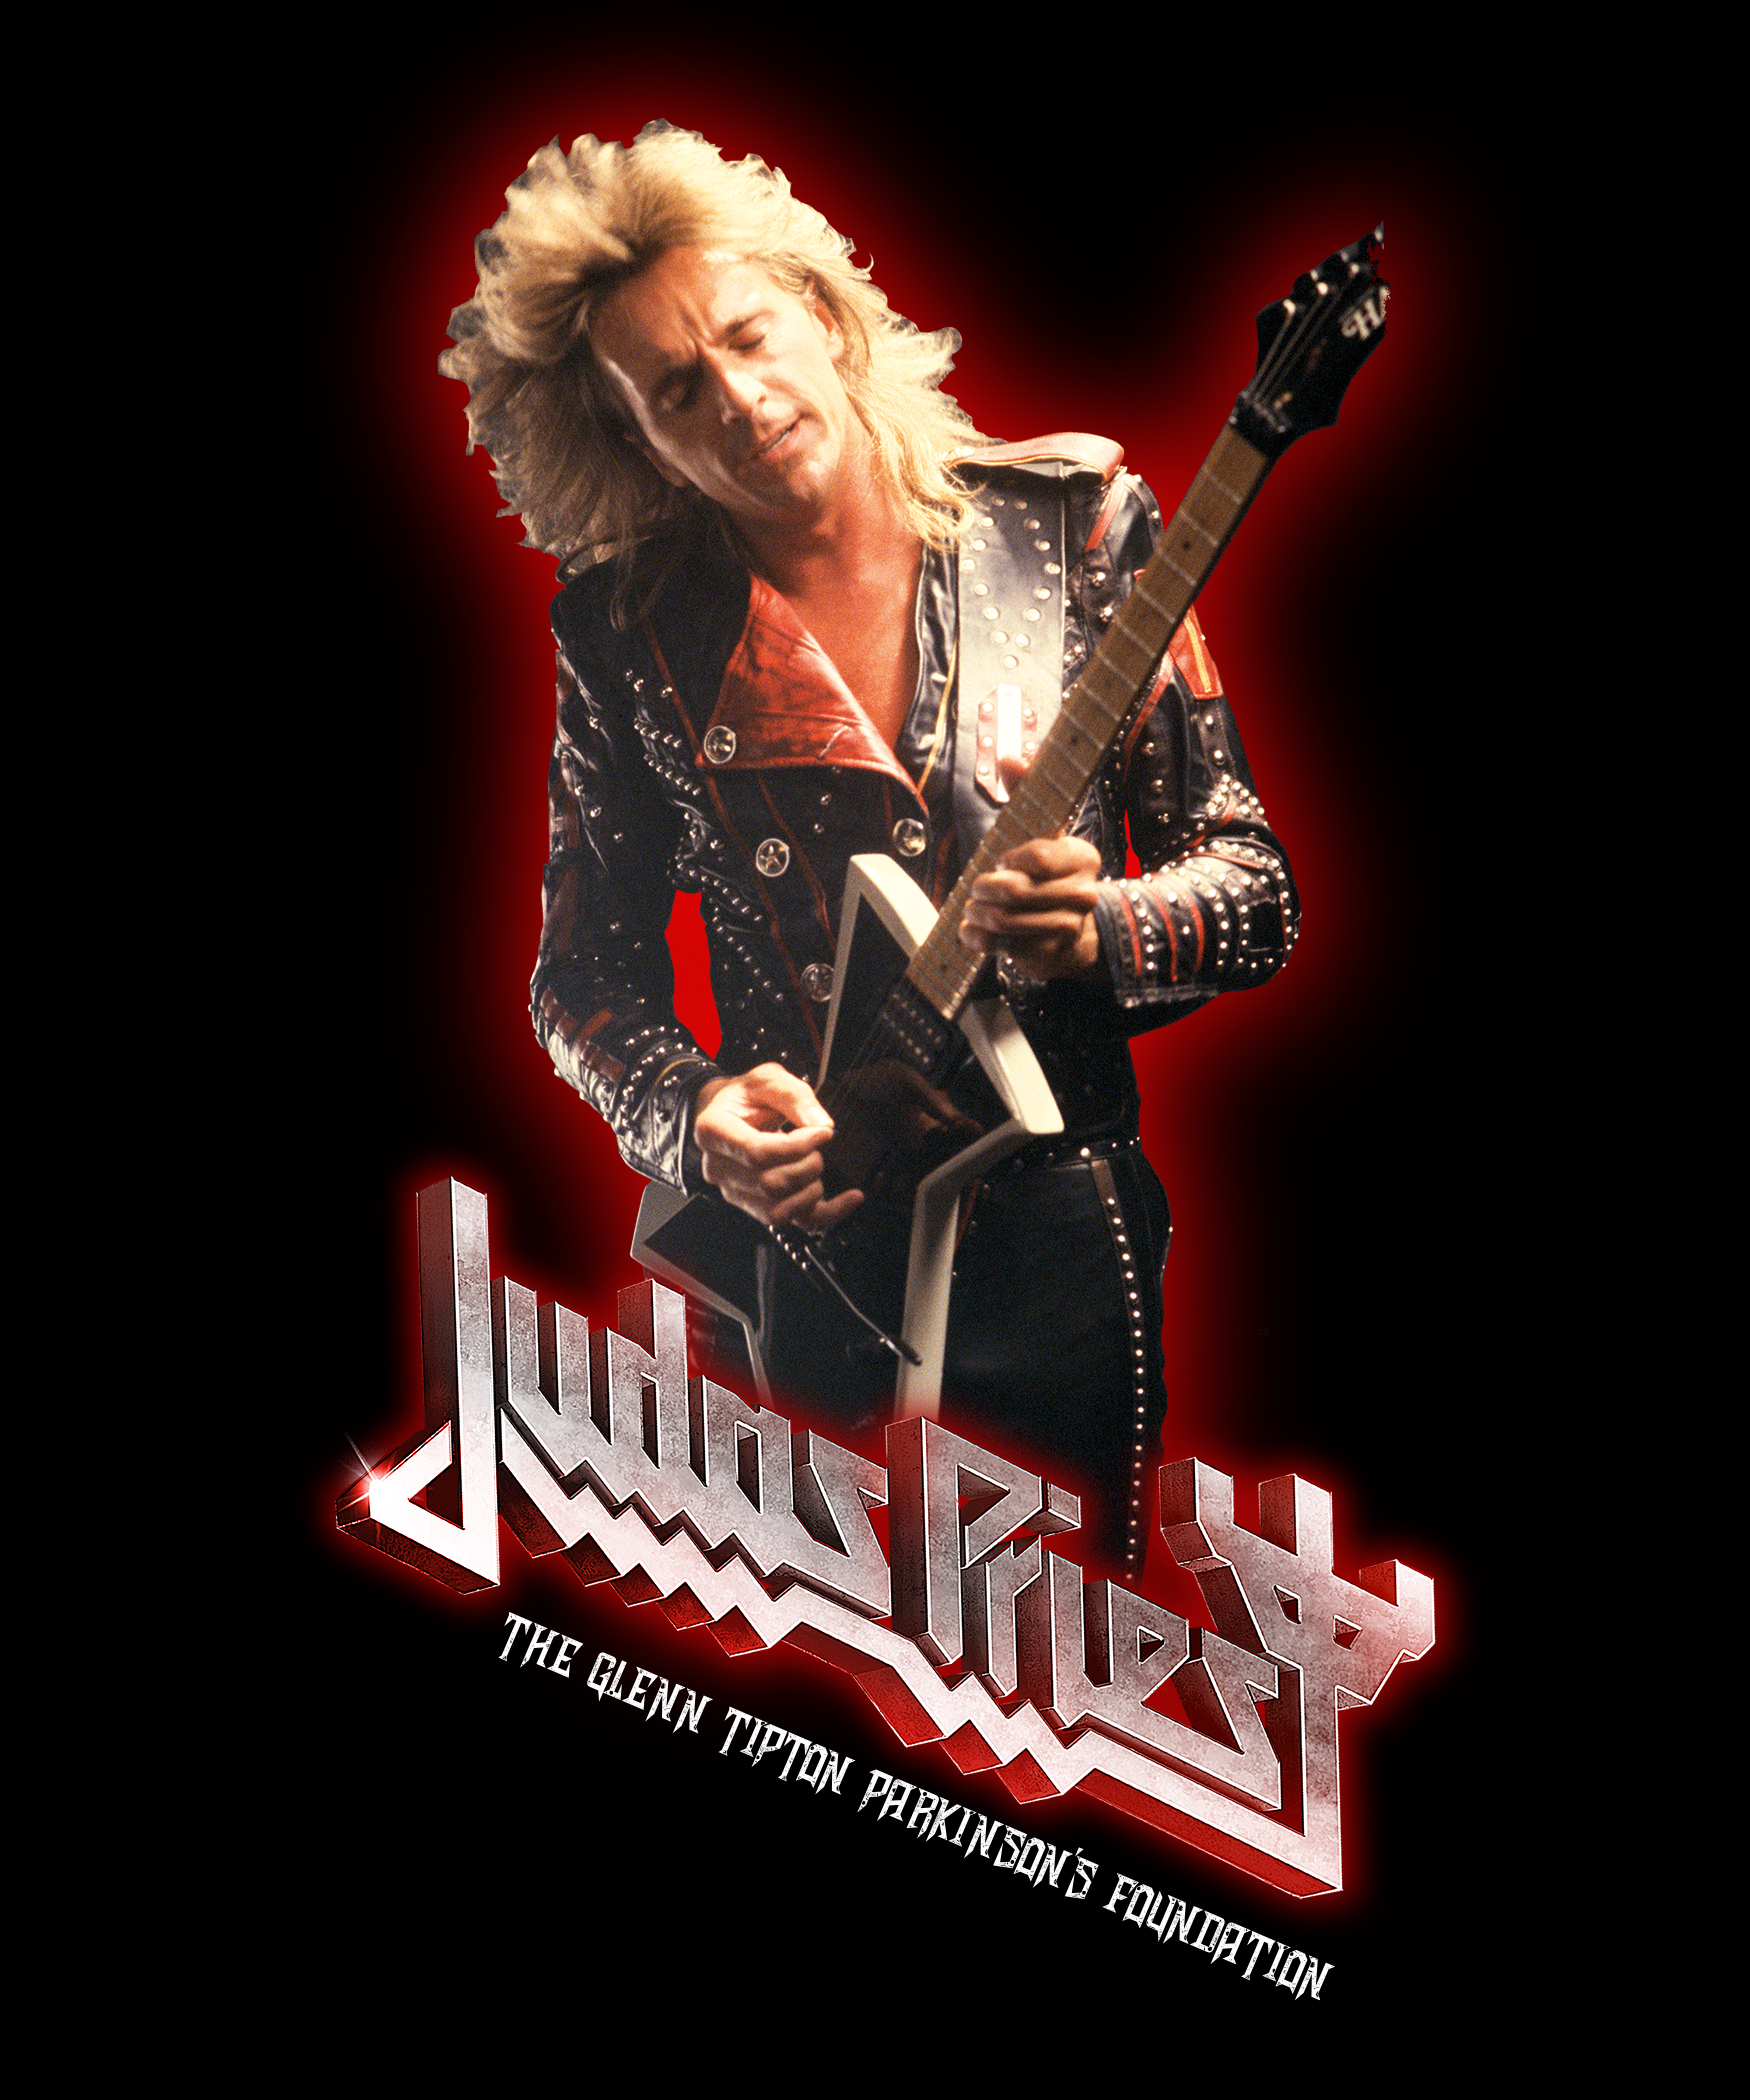 Glenn Tipton - No Surrender